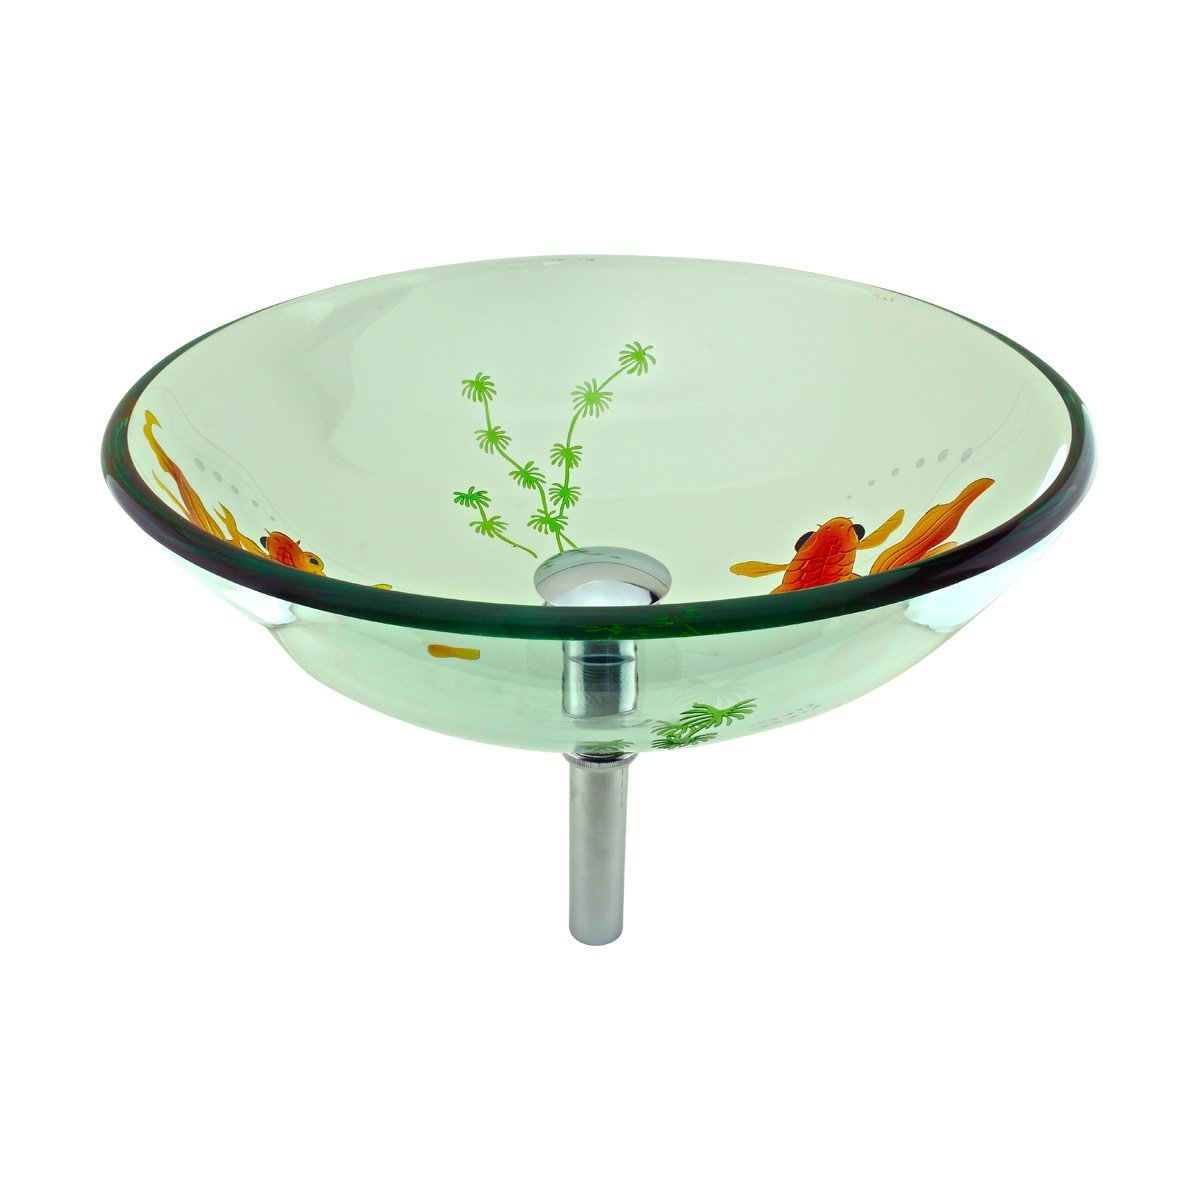 Tempered Glass Vessel Sink With Drain, Clear Single Layer Painted Koi Fish Bowl